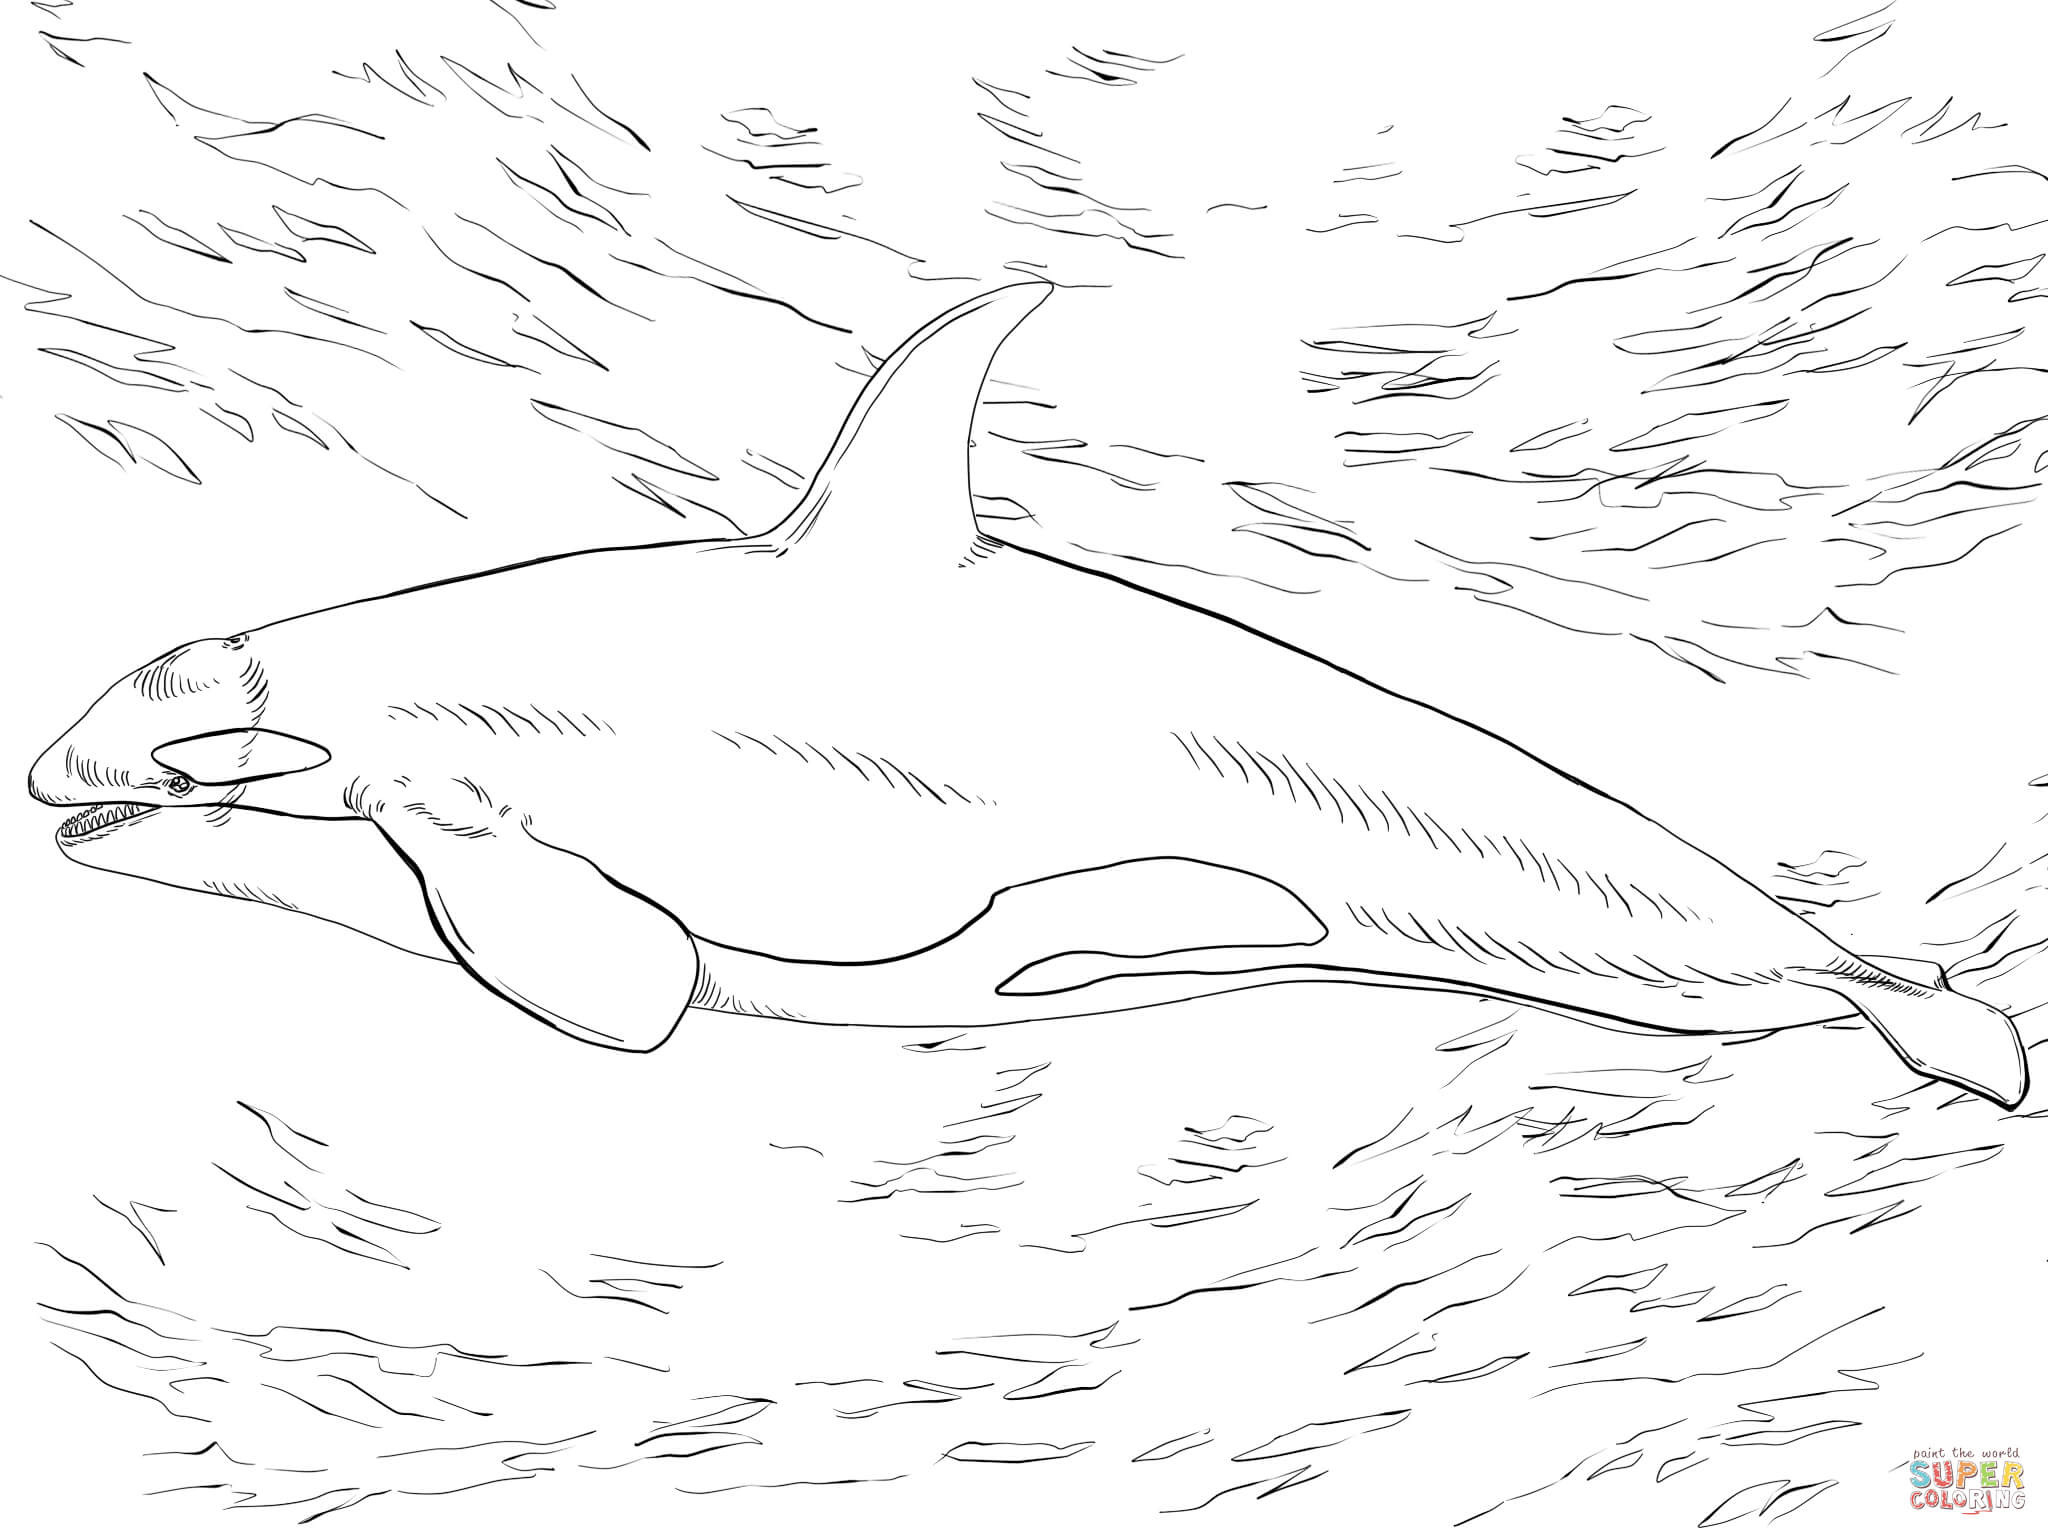 Shamu Coloring Pages Killer Whale Orca Coloring Page With Orca Coloring Pages Coloring